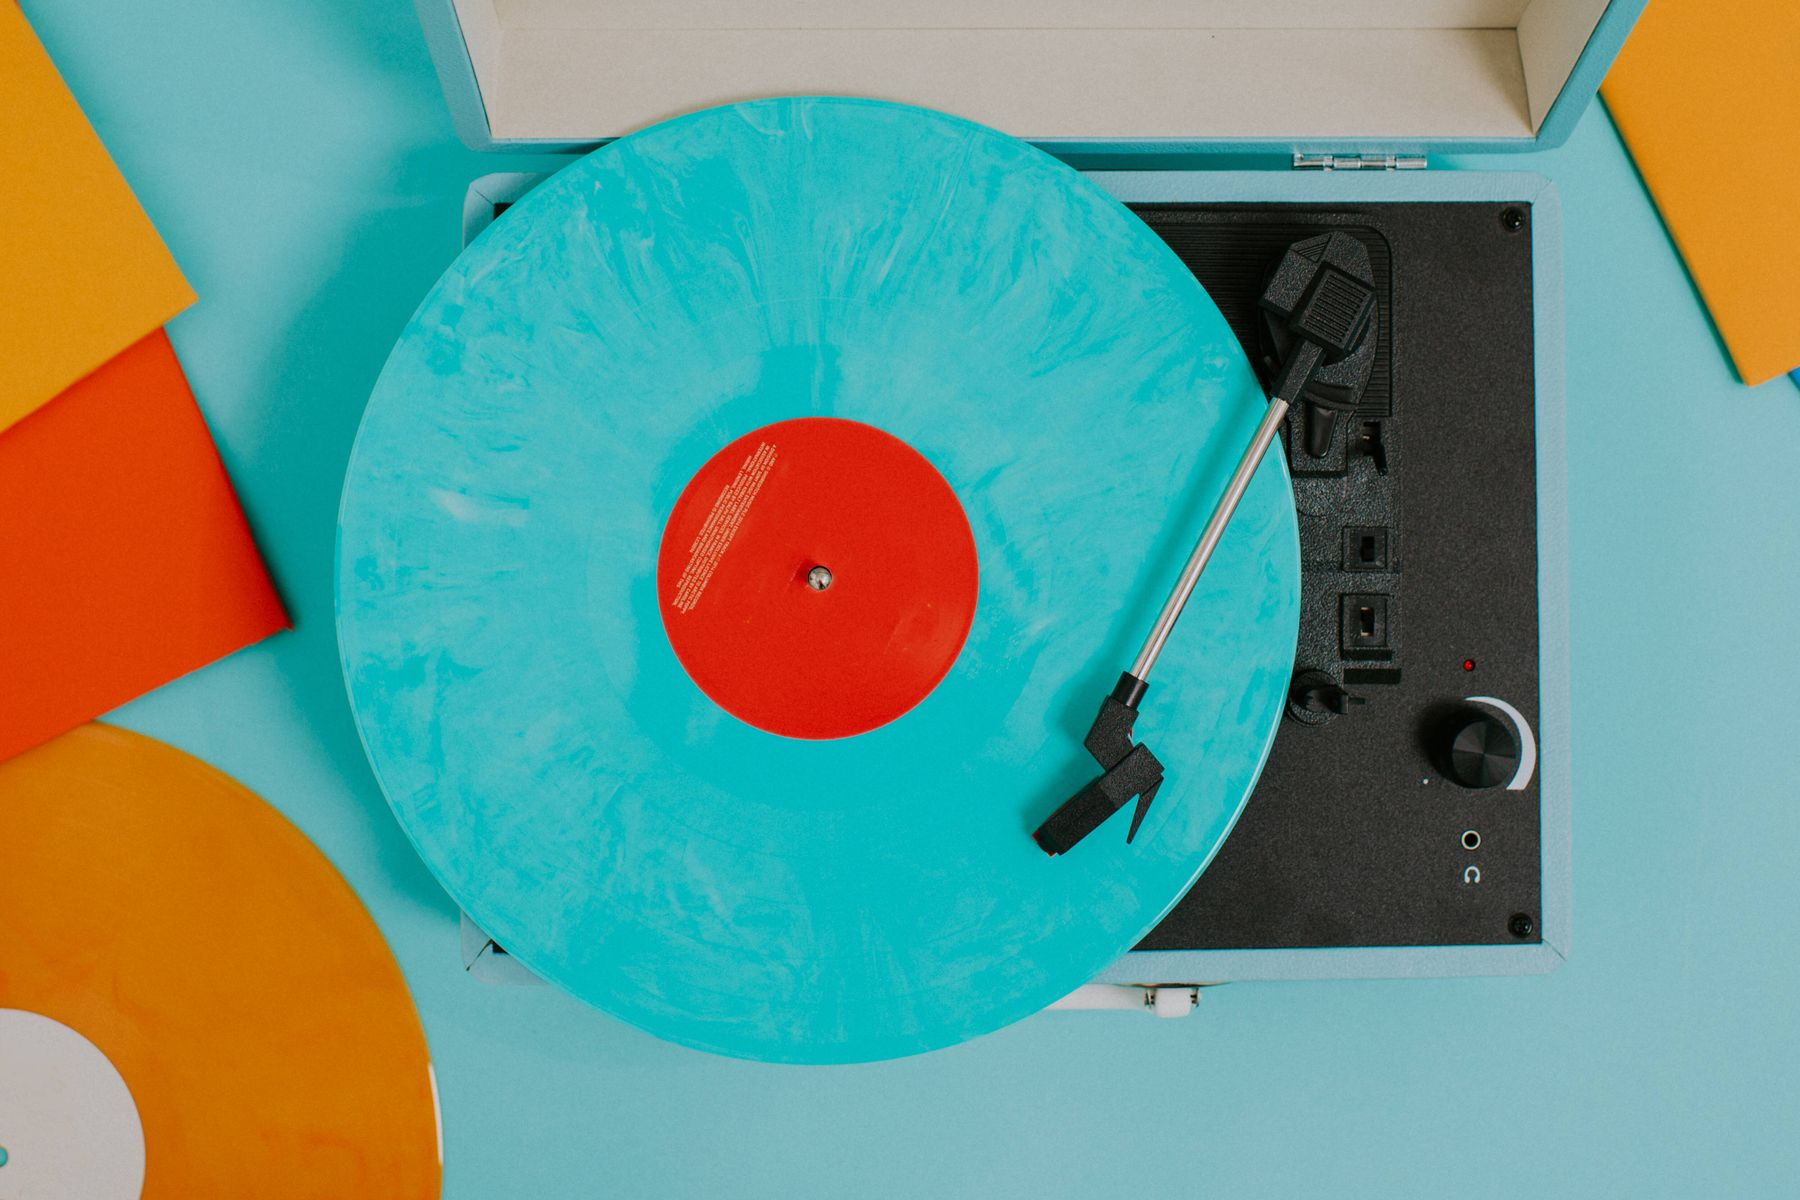 a clean vinyl record on a turntable